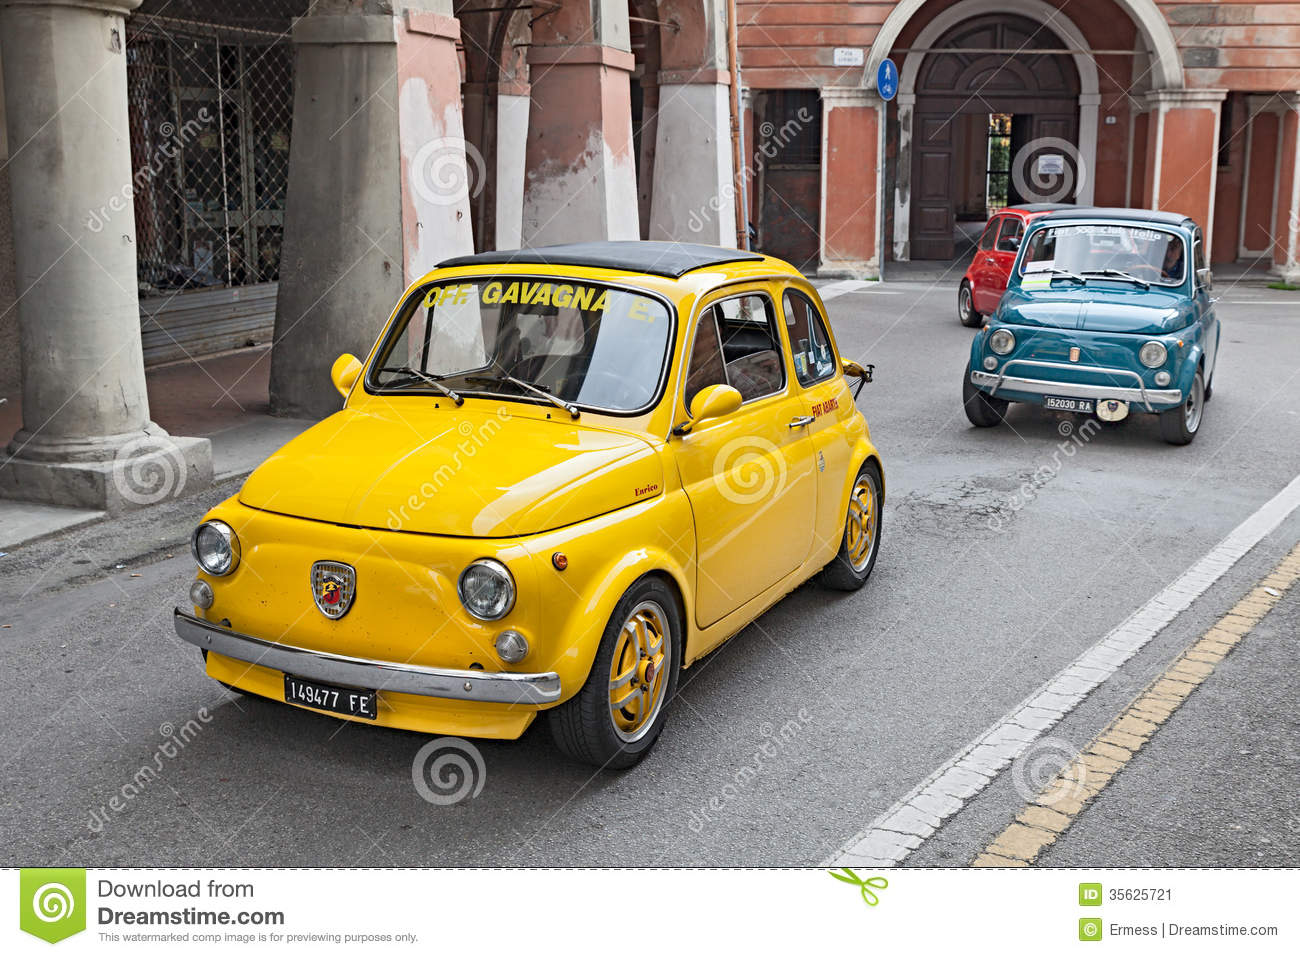 voiture fiat 500 abarth de vintage photo ditorial image 35625721. Black Bedroom Furniture Sets. Home Design Ideas